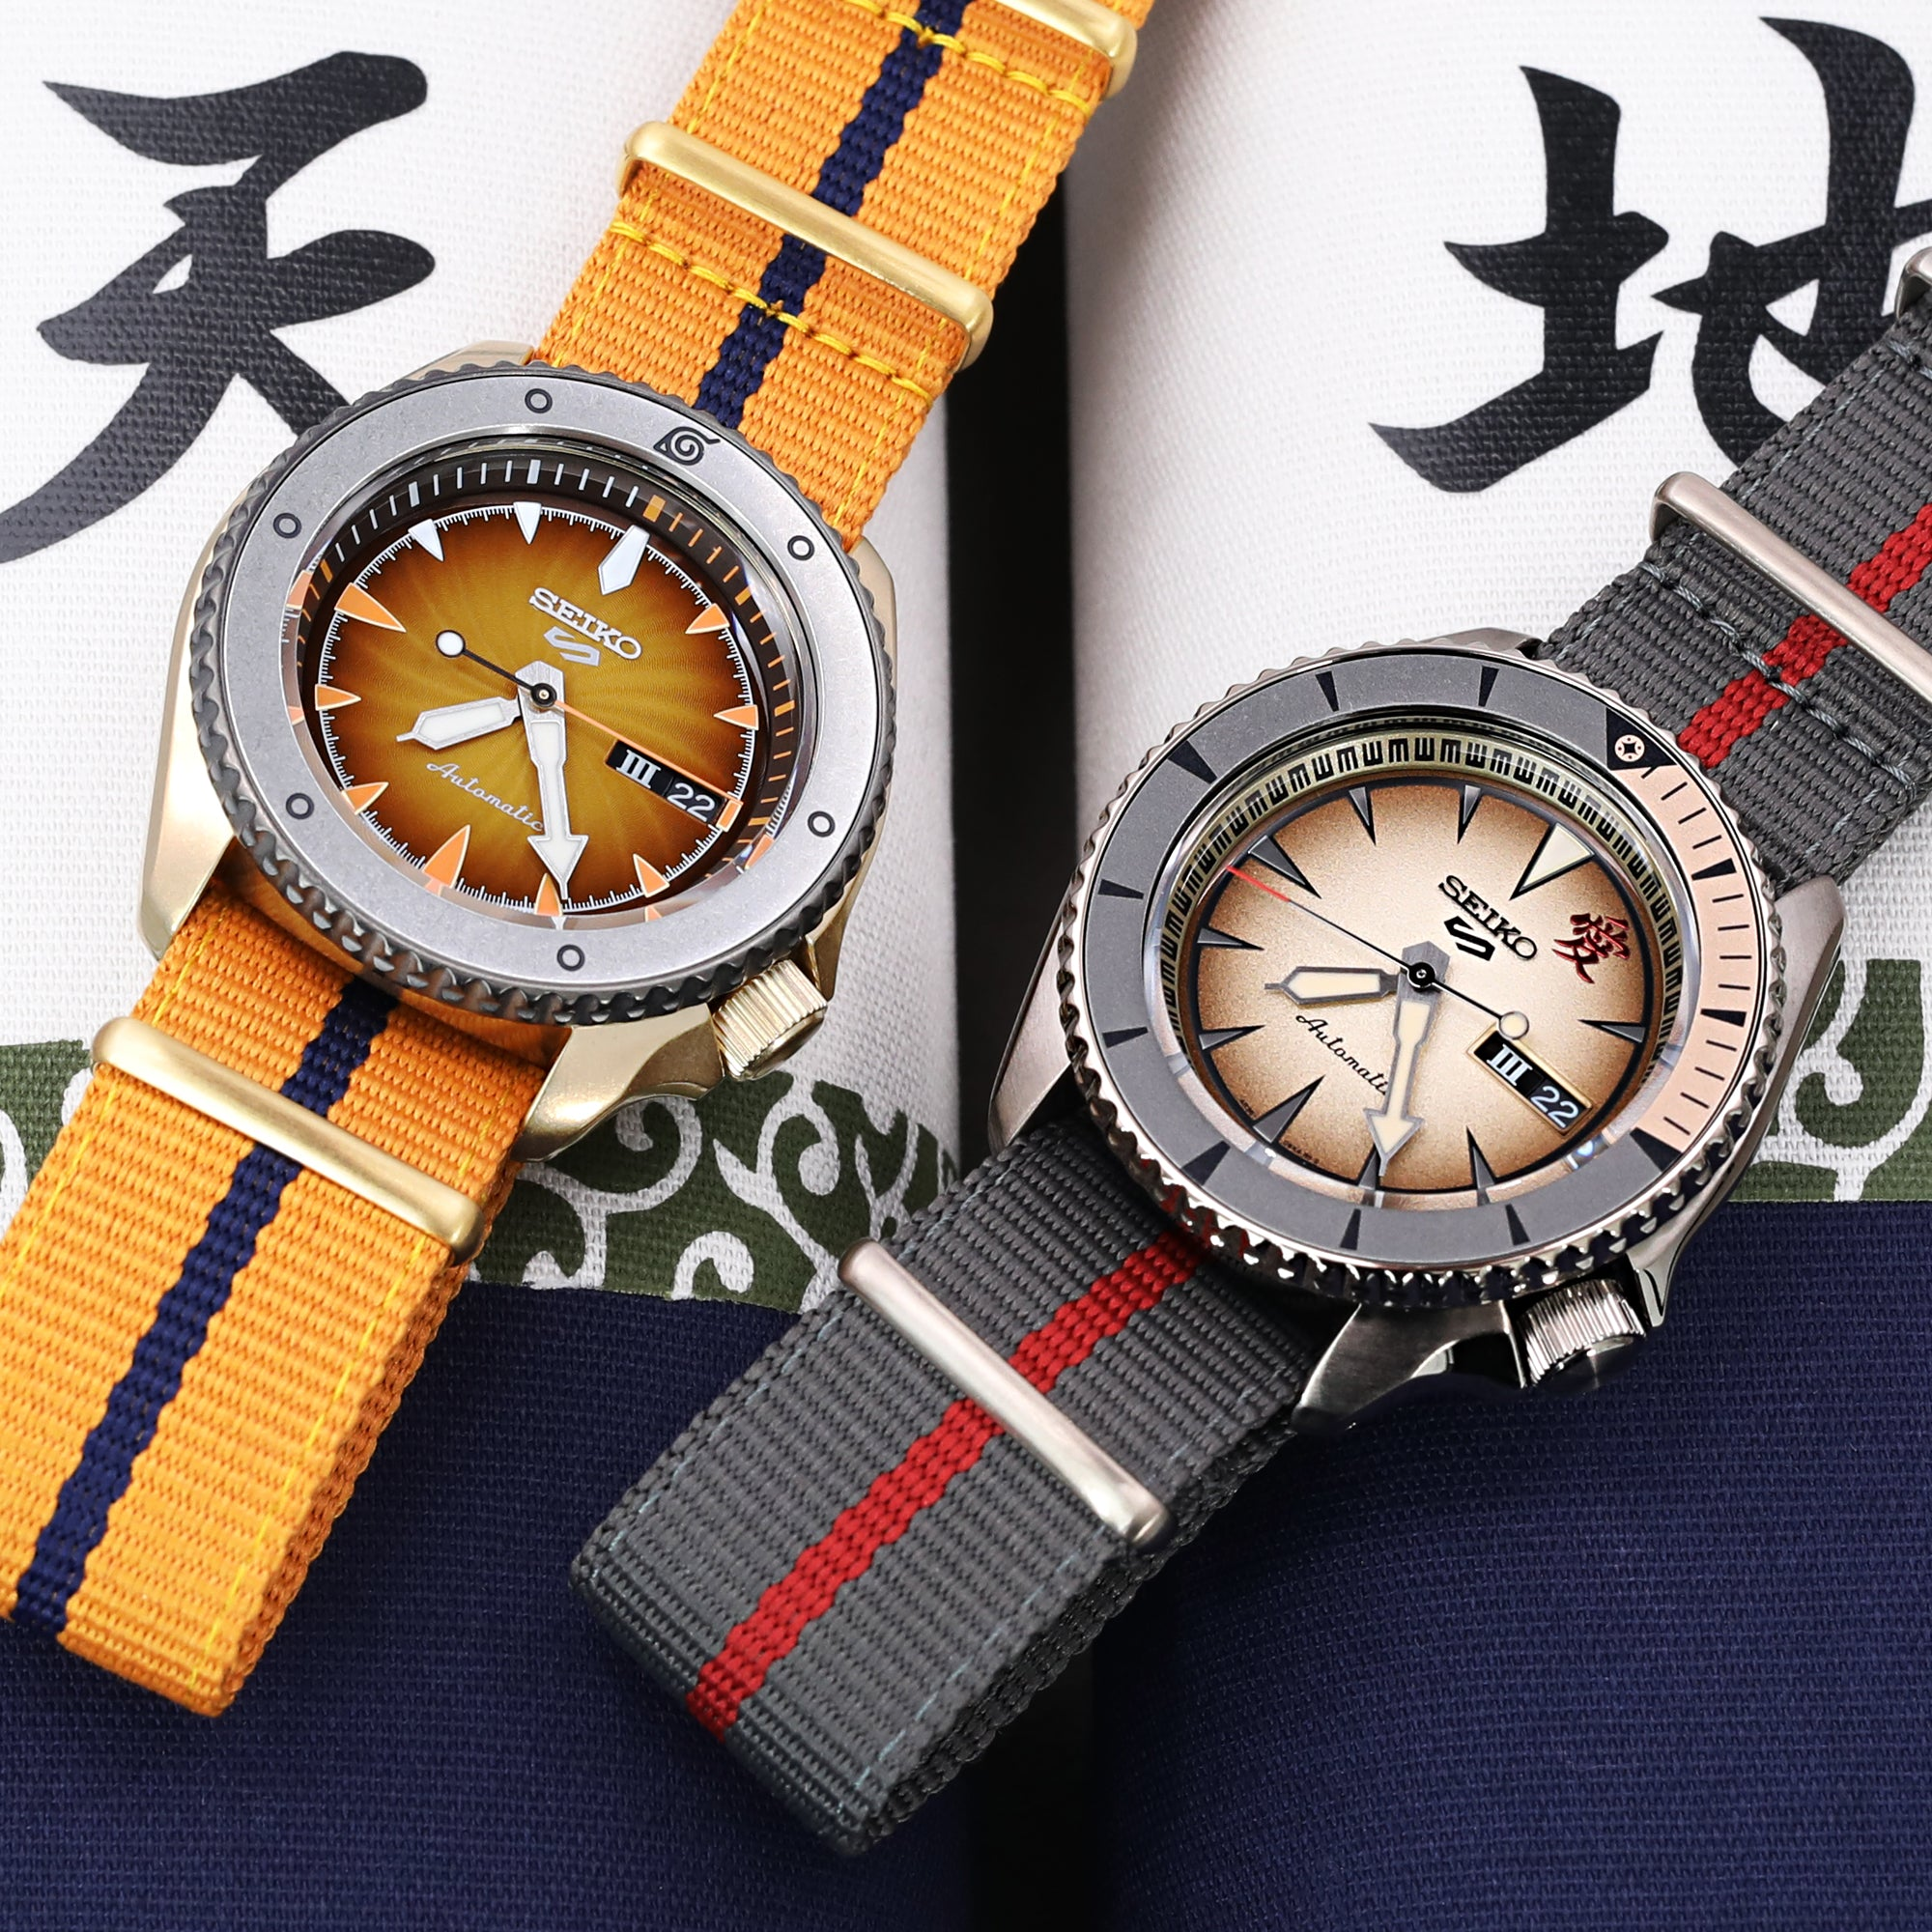 NEW Seiko 5 Sports & Naruto Watch Collaboration